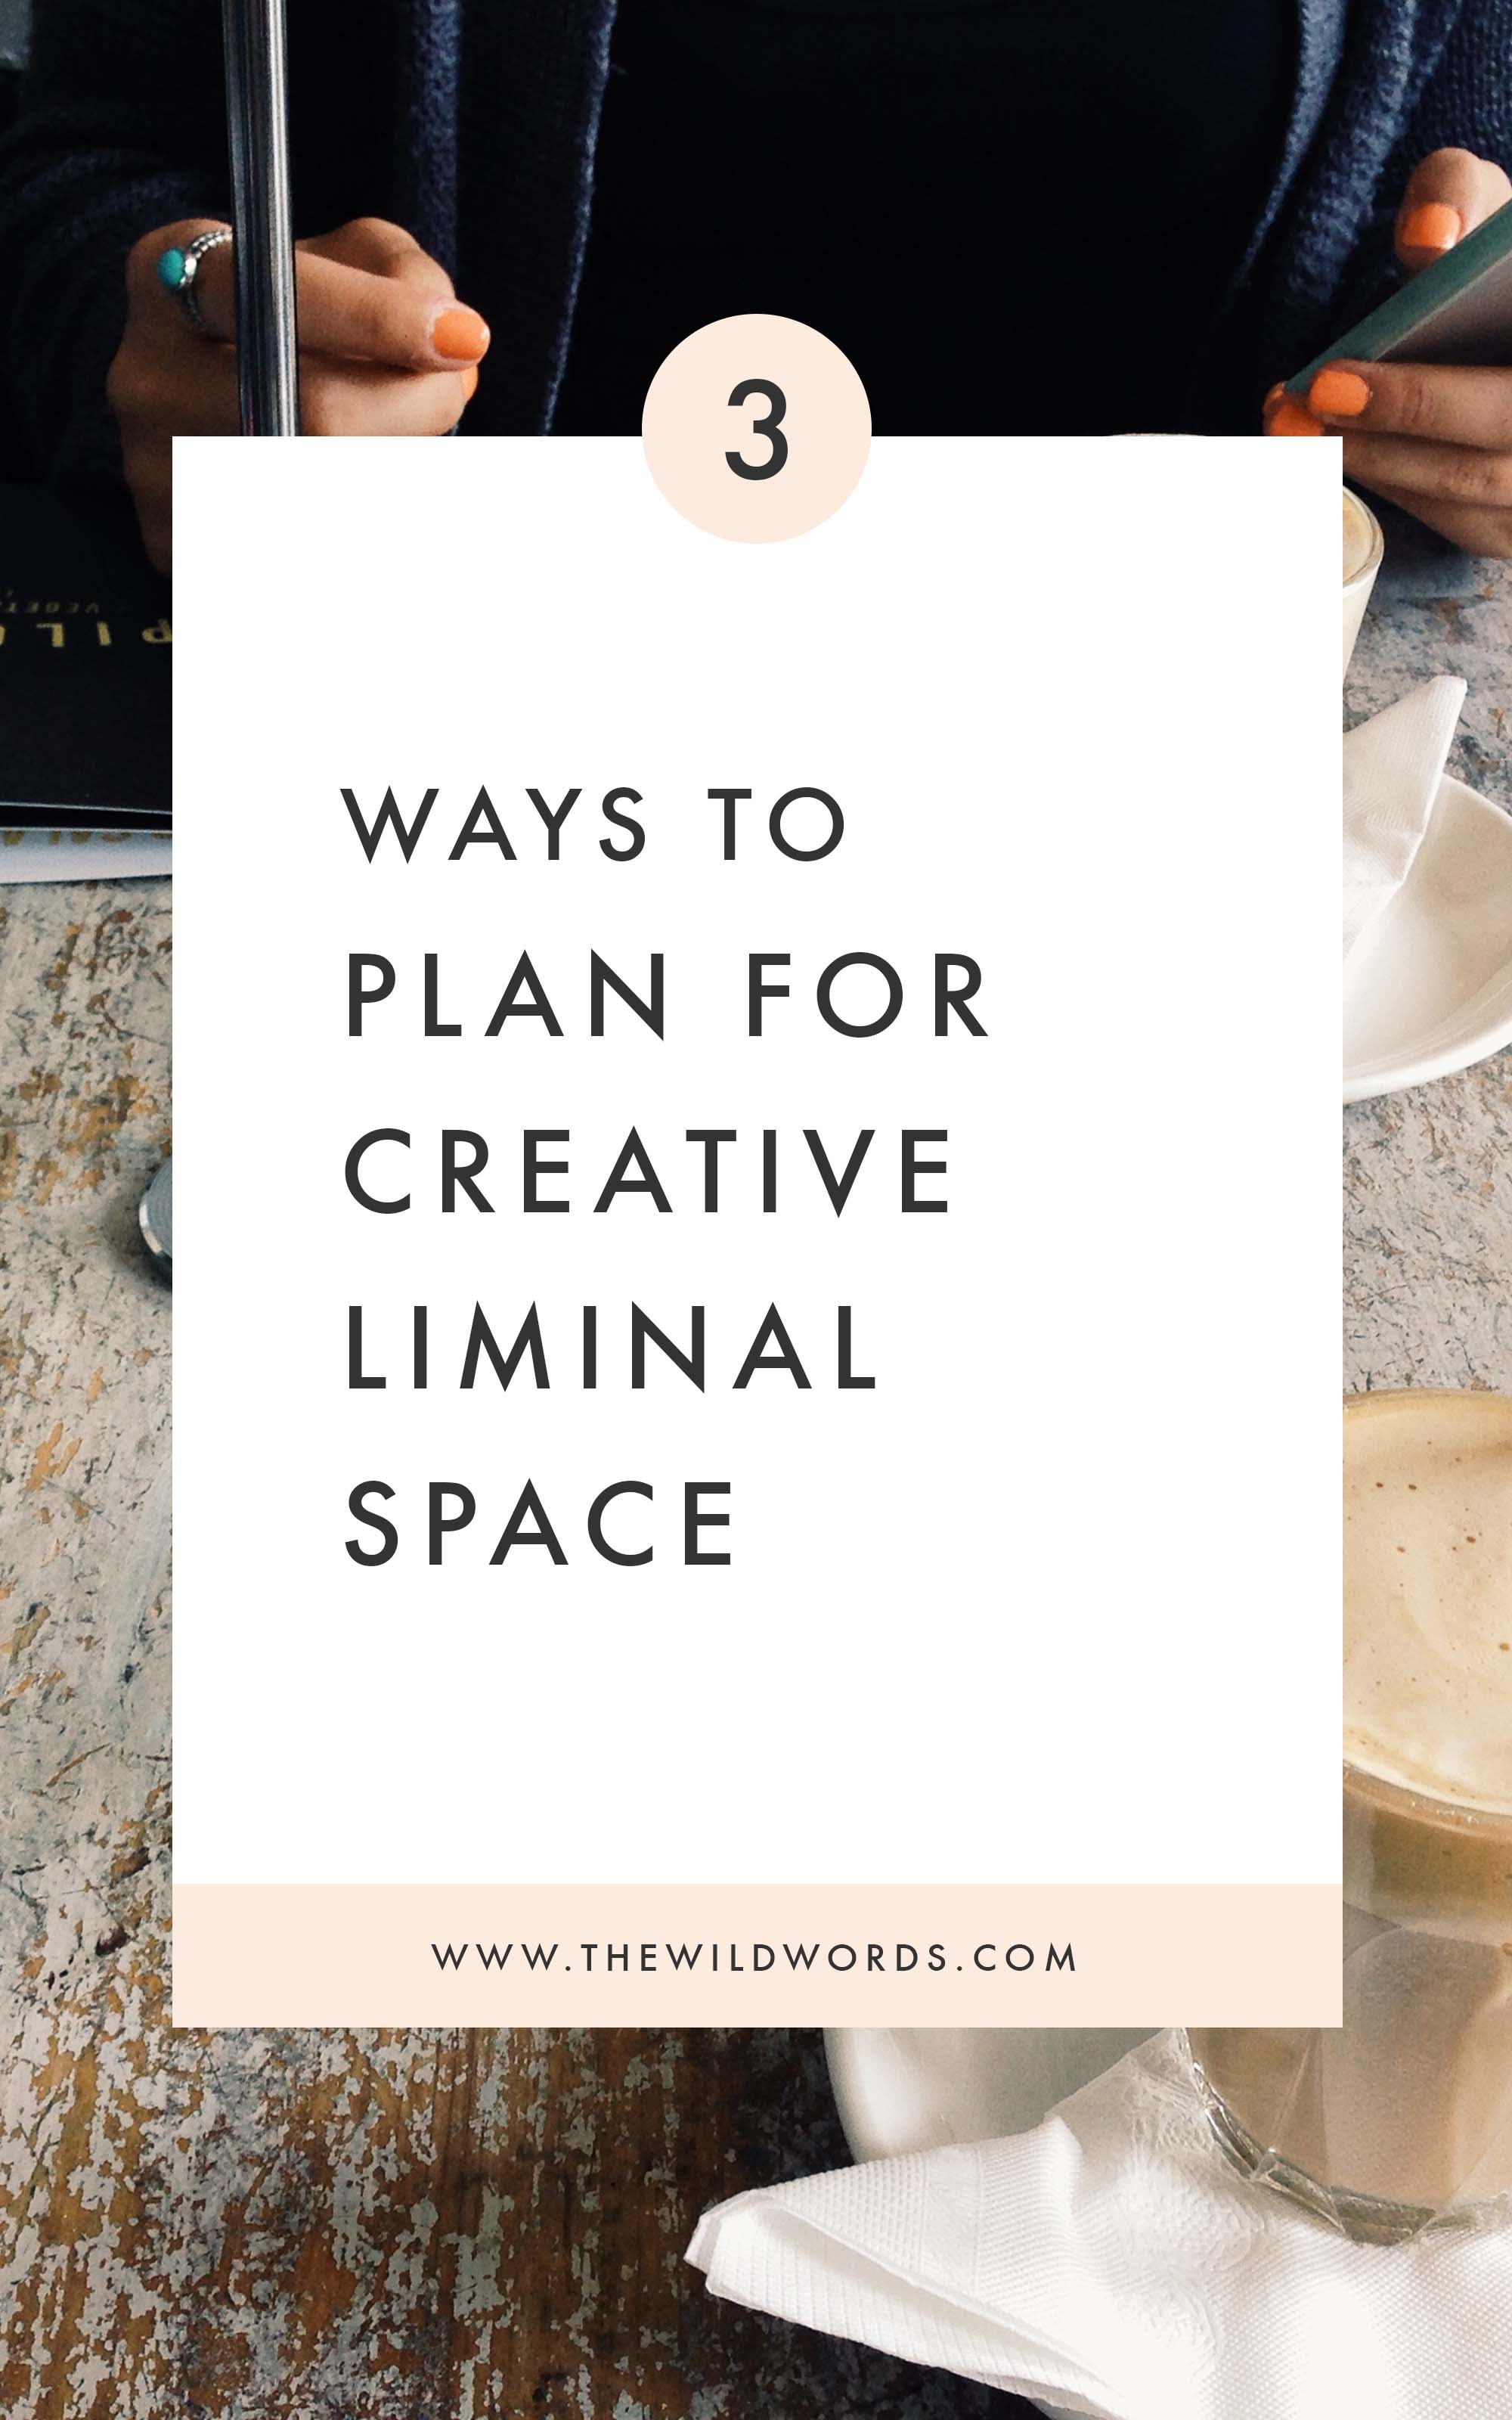 3 Ways to Plan for Creative Liminal Space | Wild Words